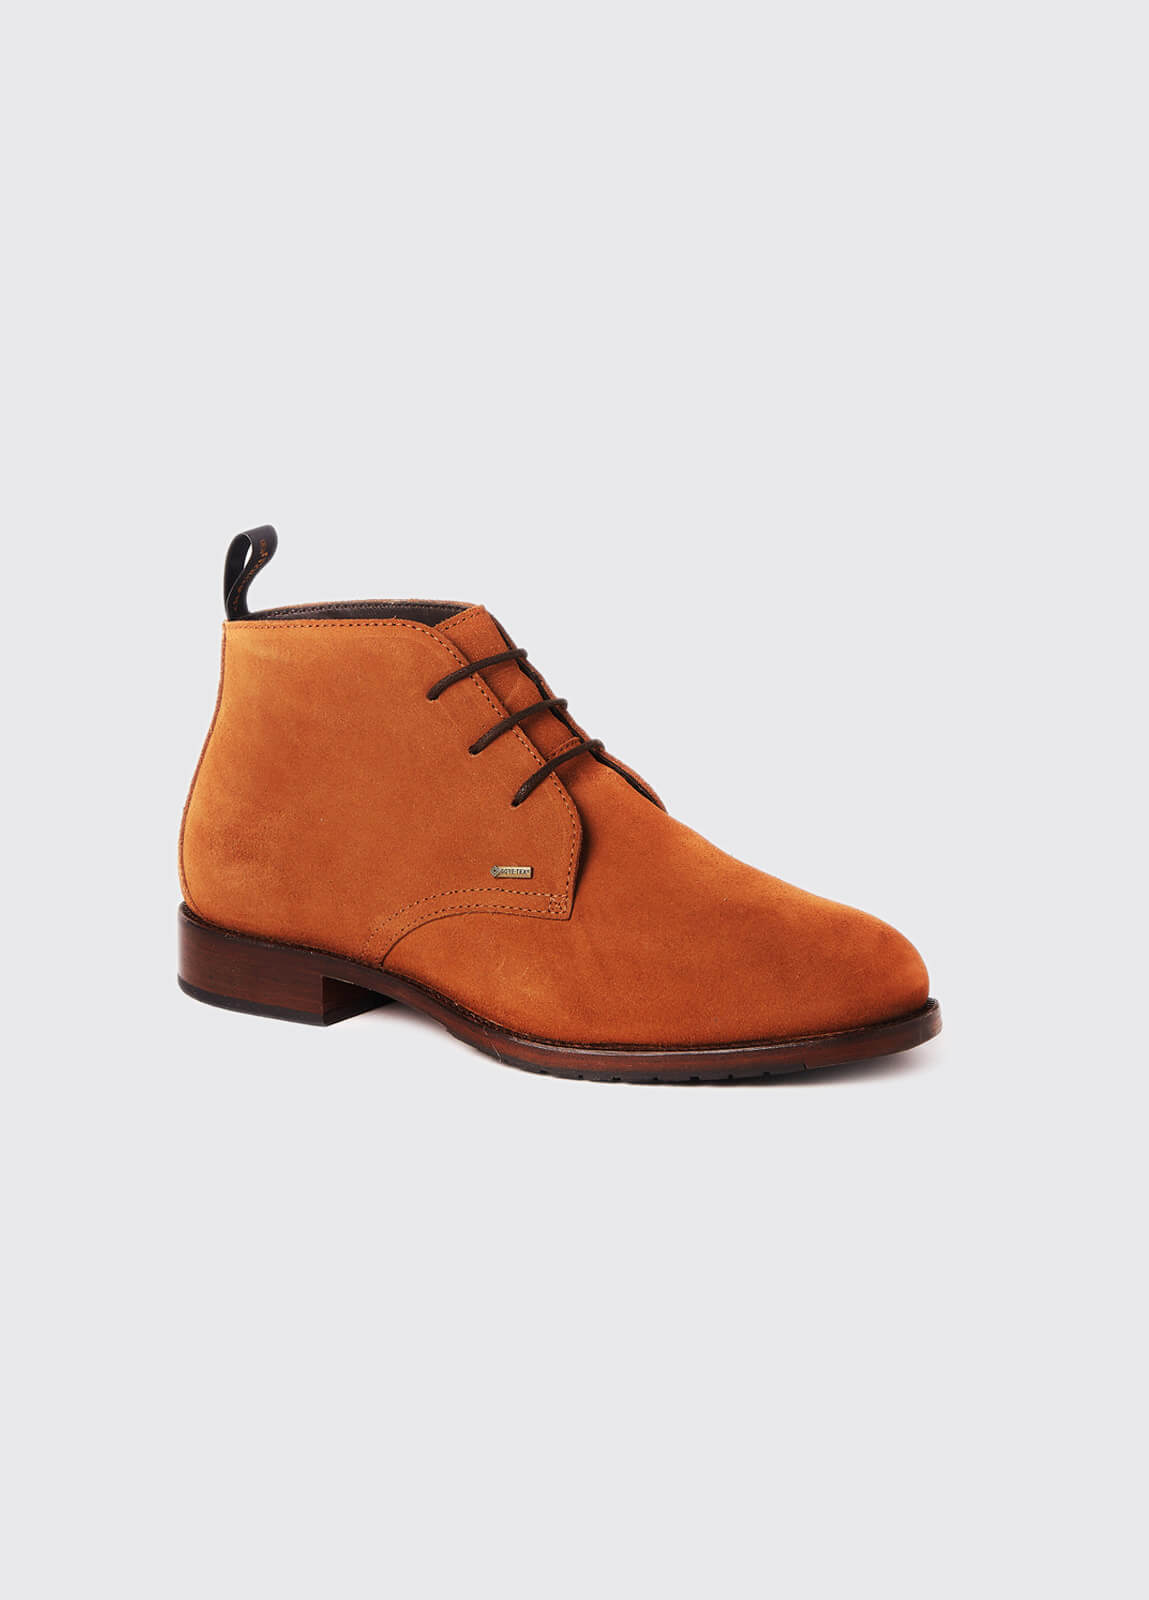 Waterville Mid Top Leather Boot - Camel